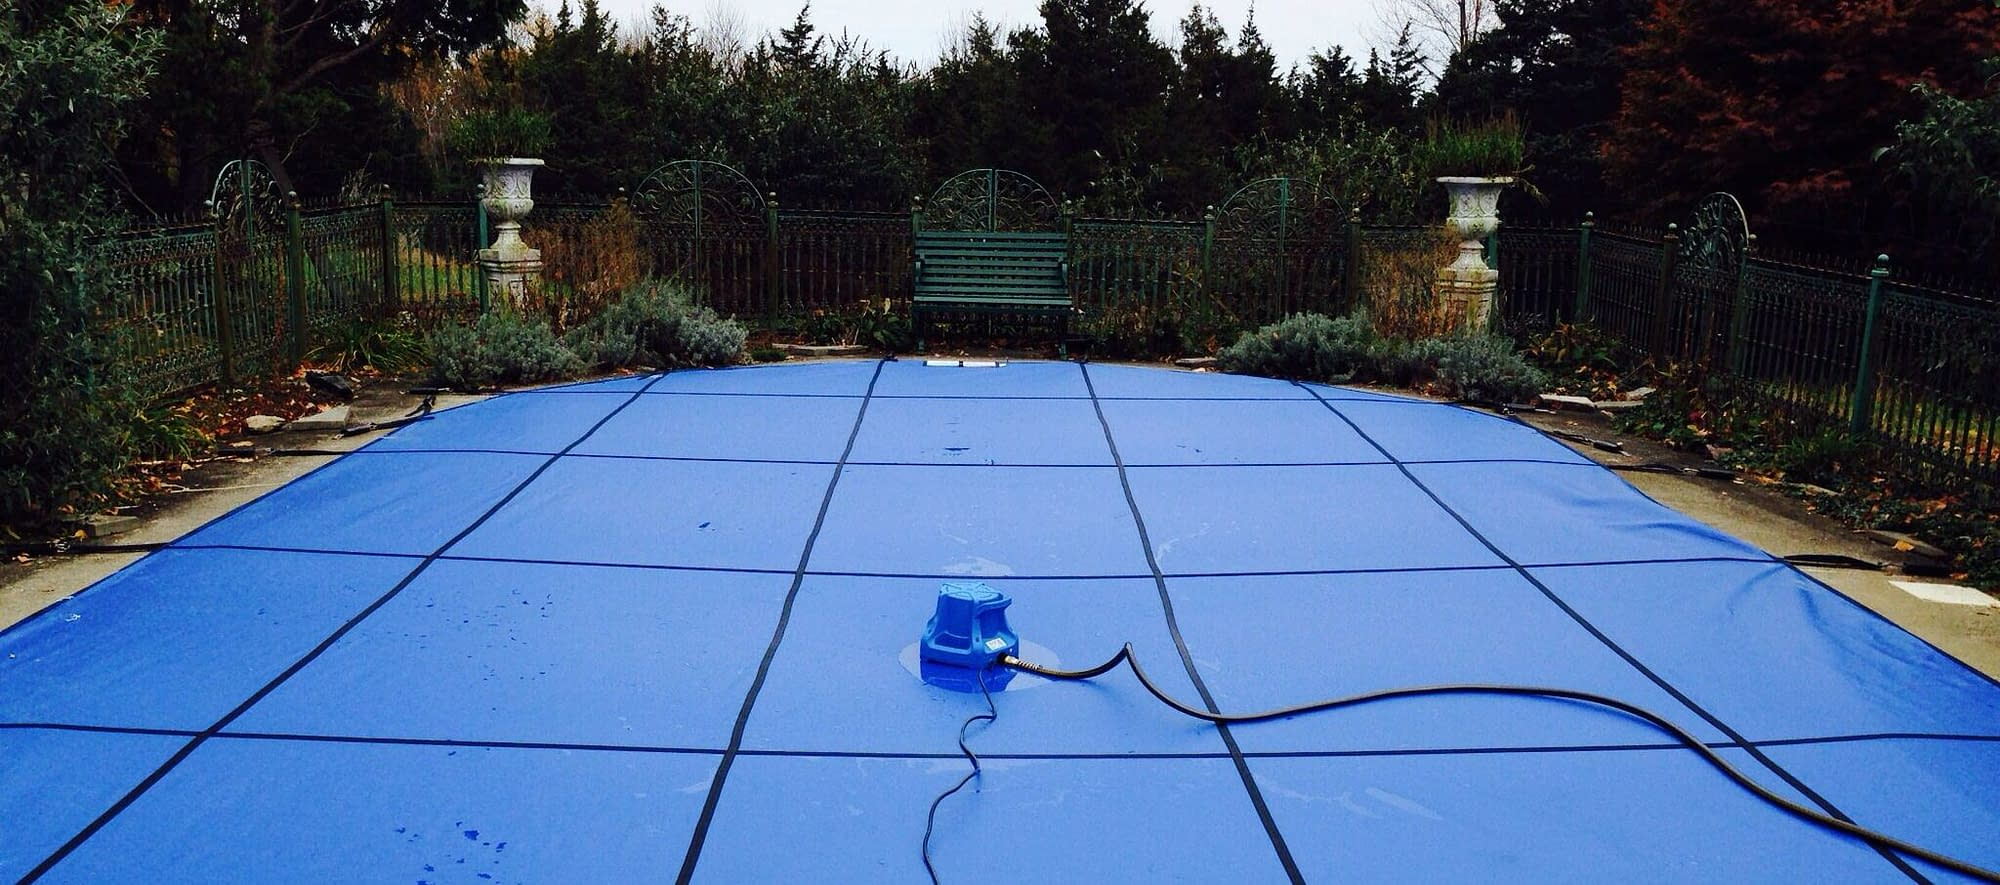 Best Pool Cover Pumps - Product Reviews and Buyer's Guide 14